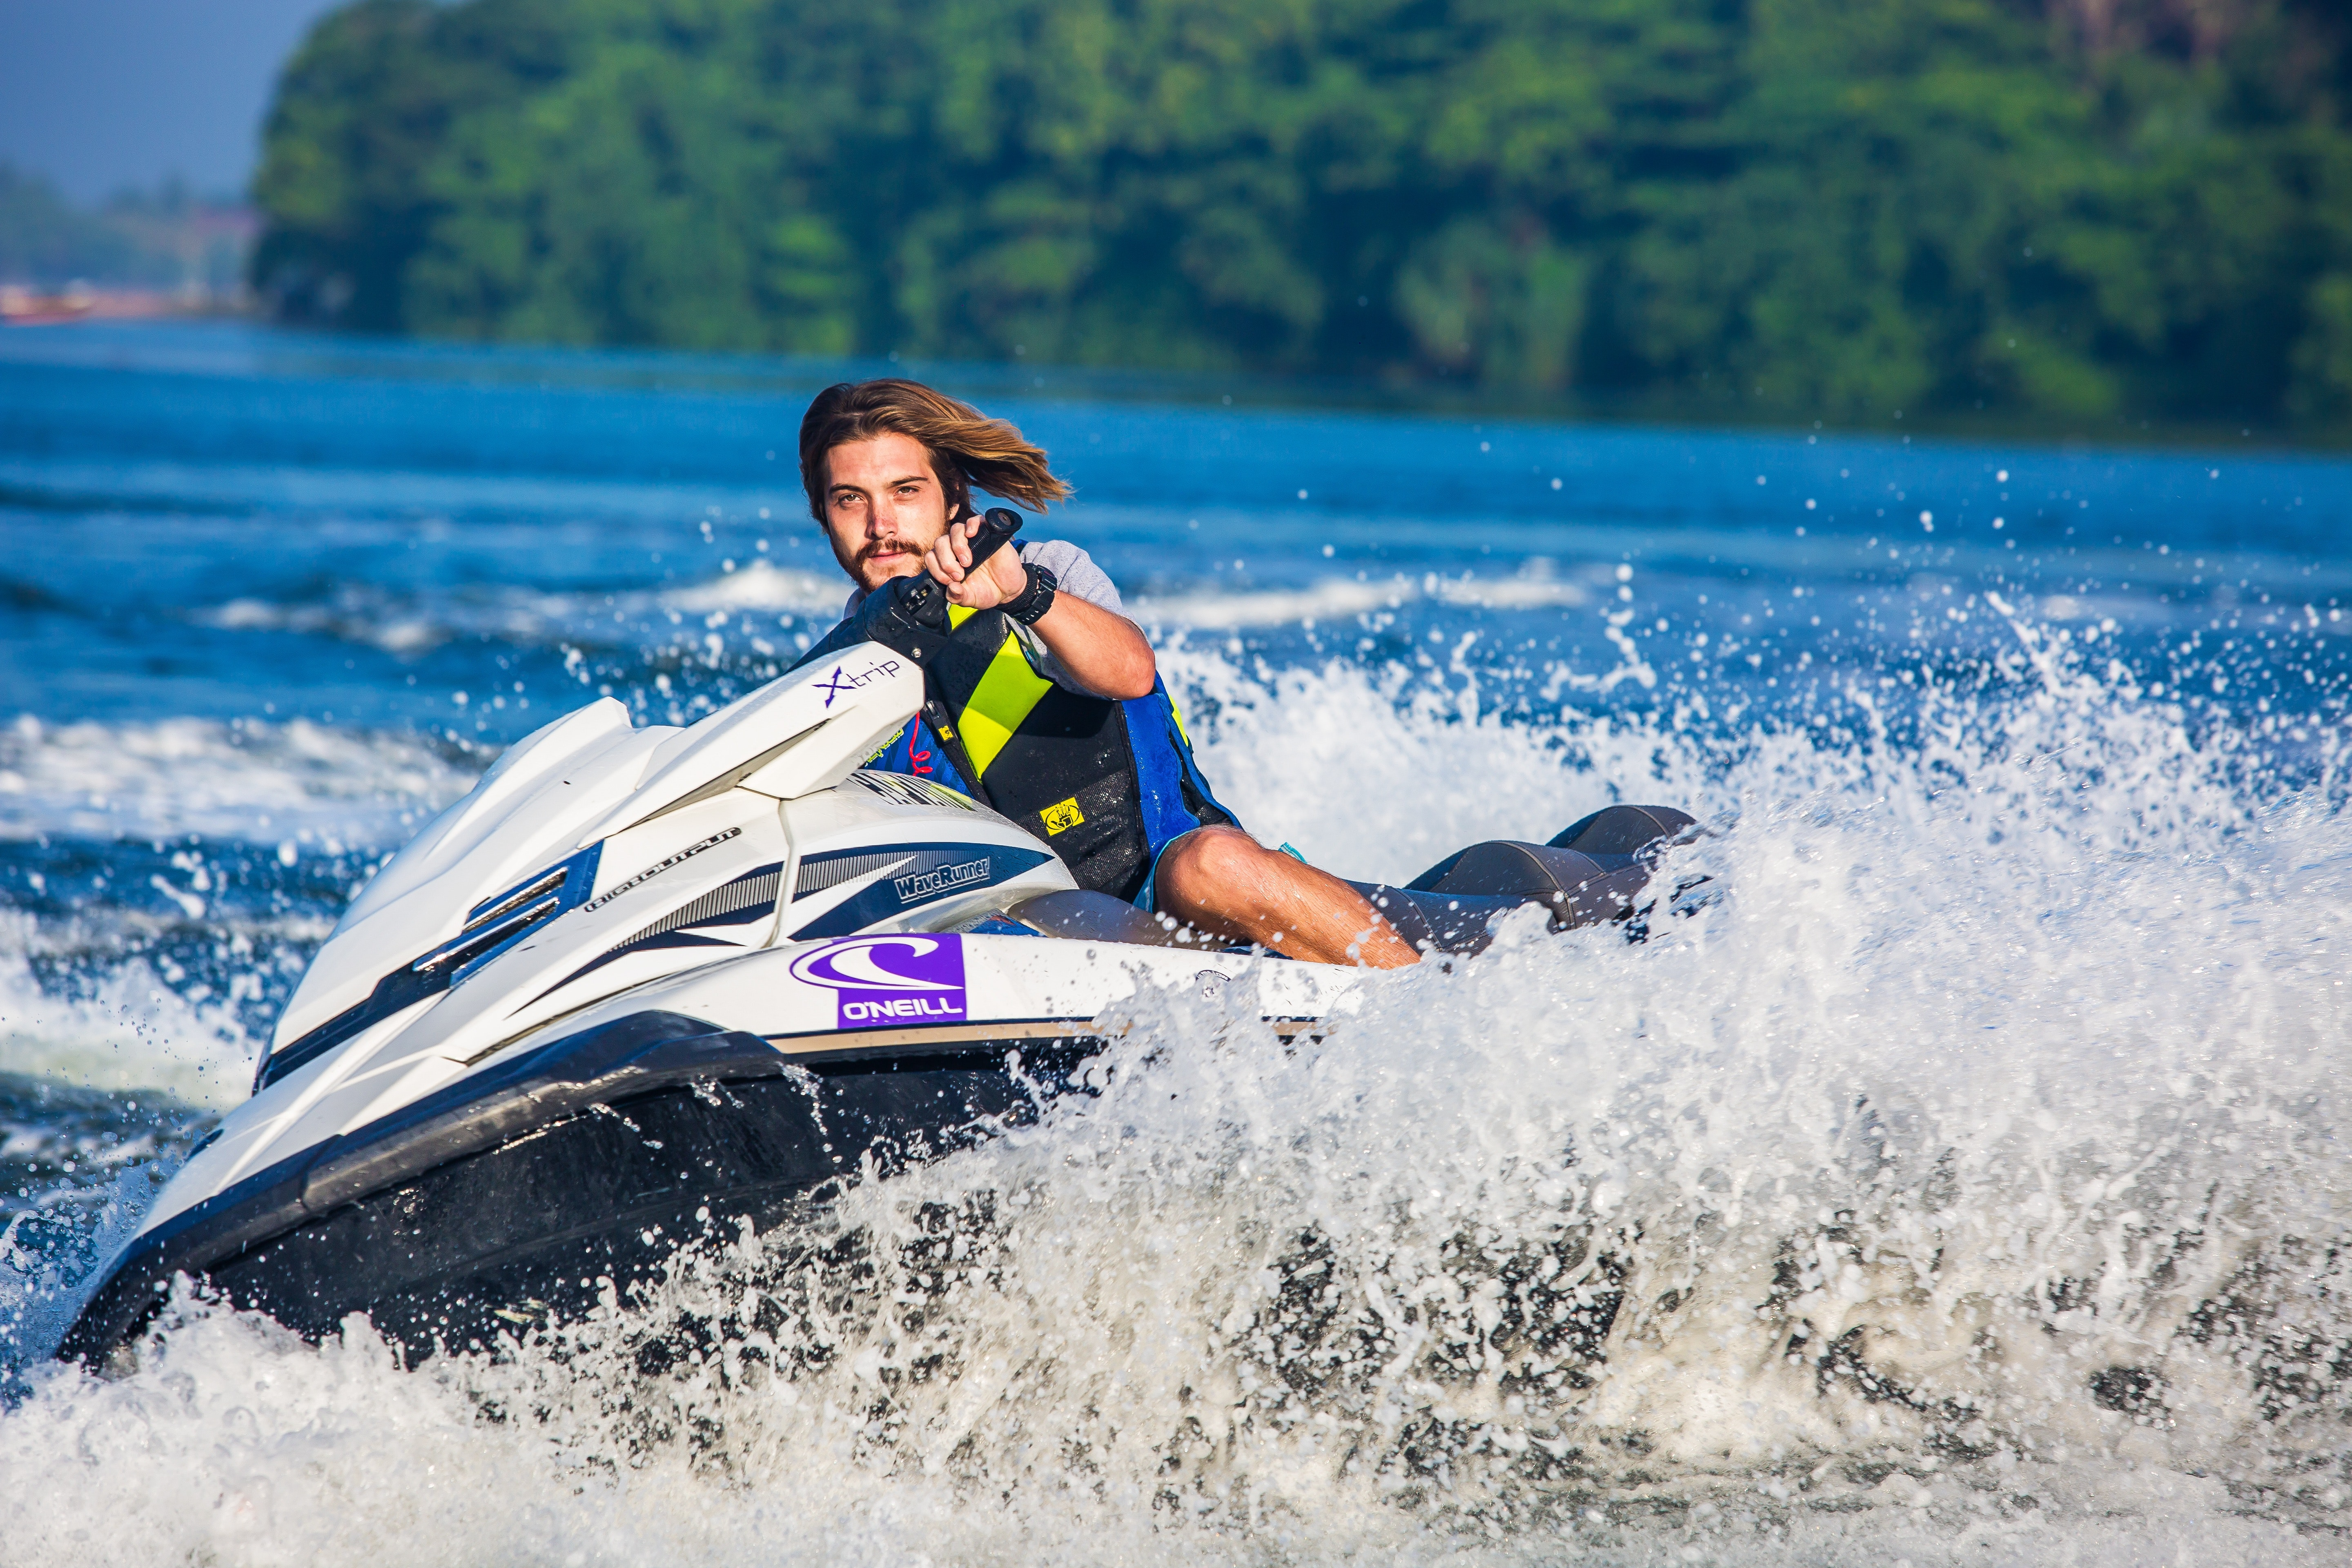 Man in safety vest riding a personal watercraft during daytime photo